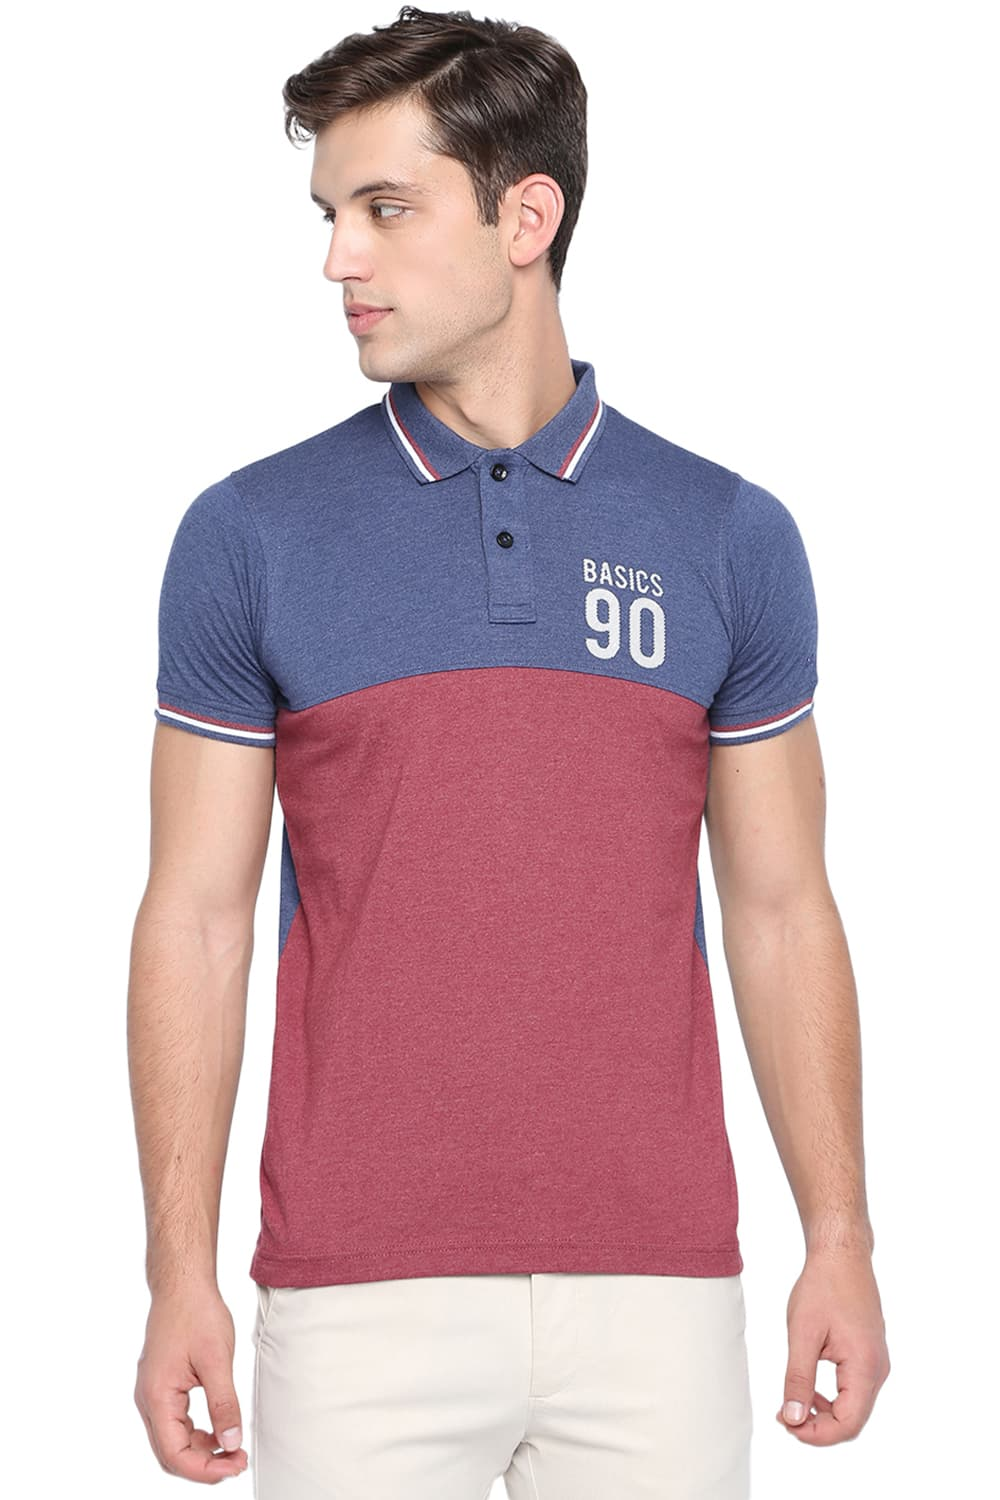 4f791d85 Basics Muscle Fit Ruby Wine Heather Polo T Shirt-19bts40890